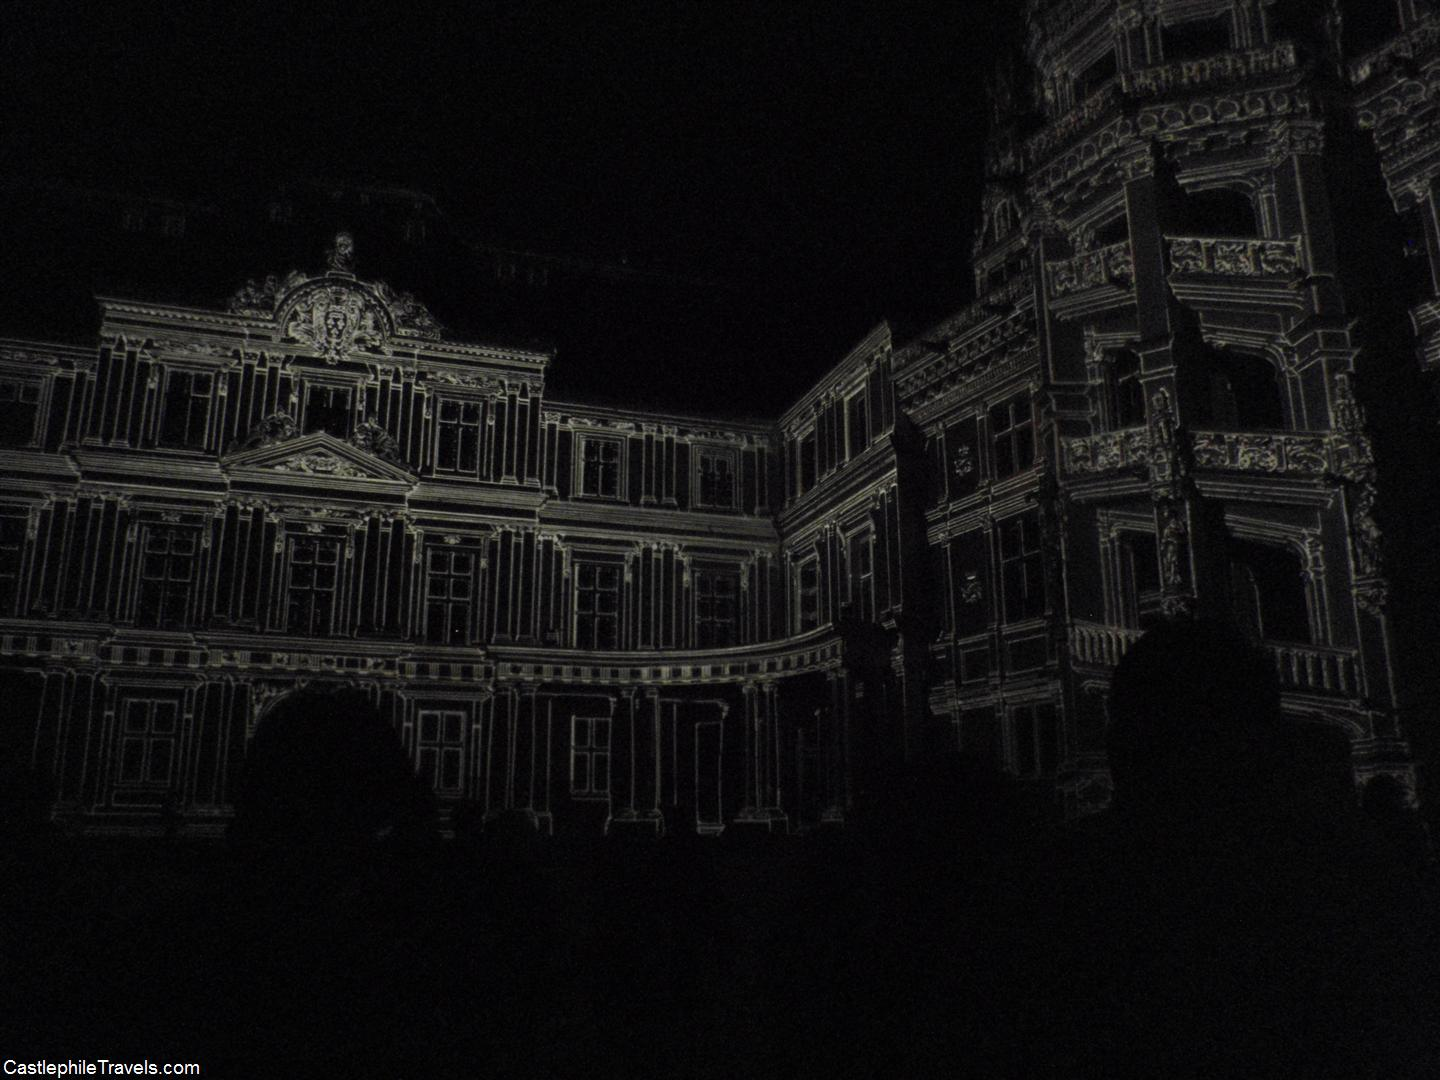 The Sound and Light Show at the Château de Blois